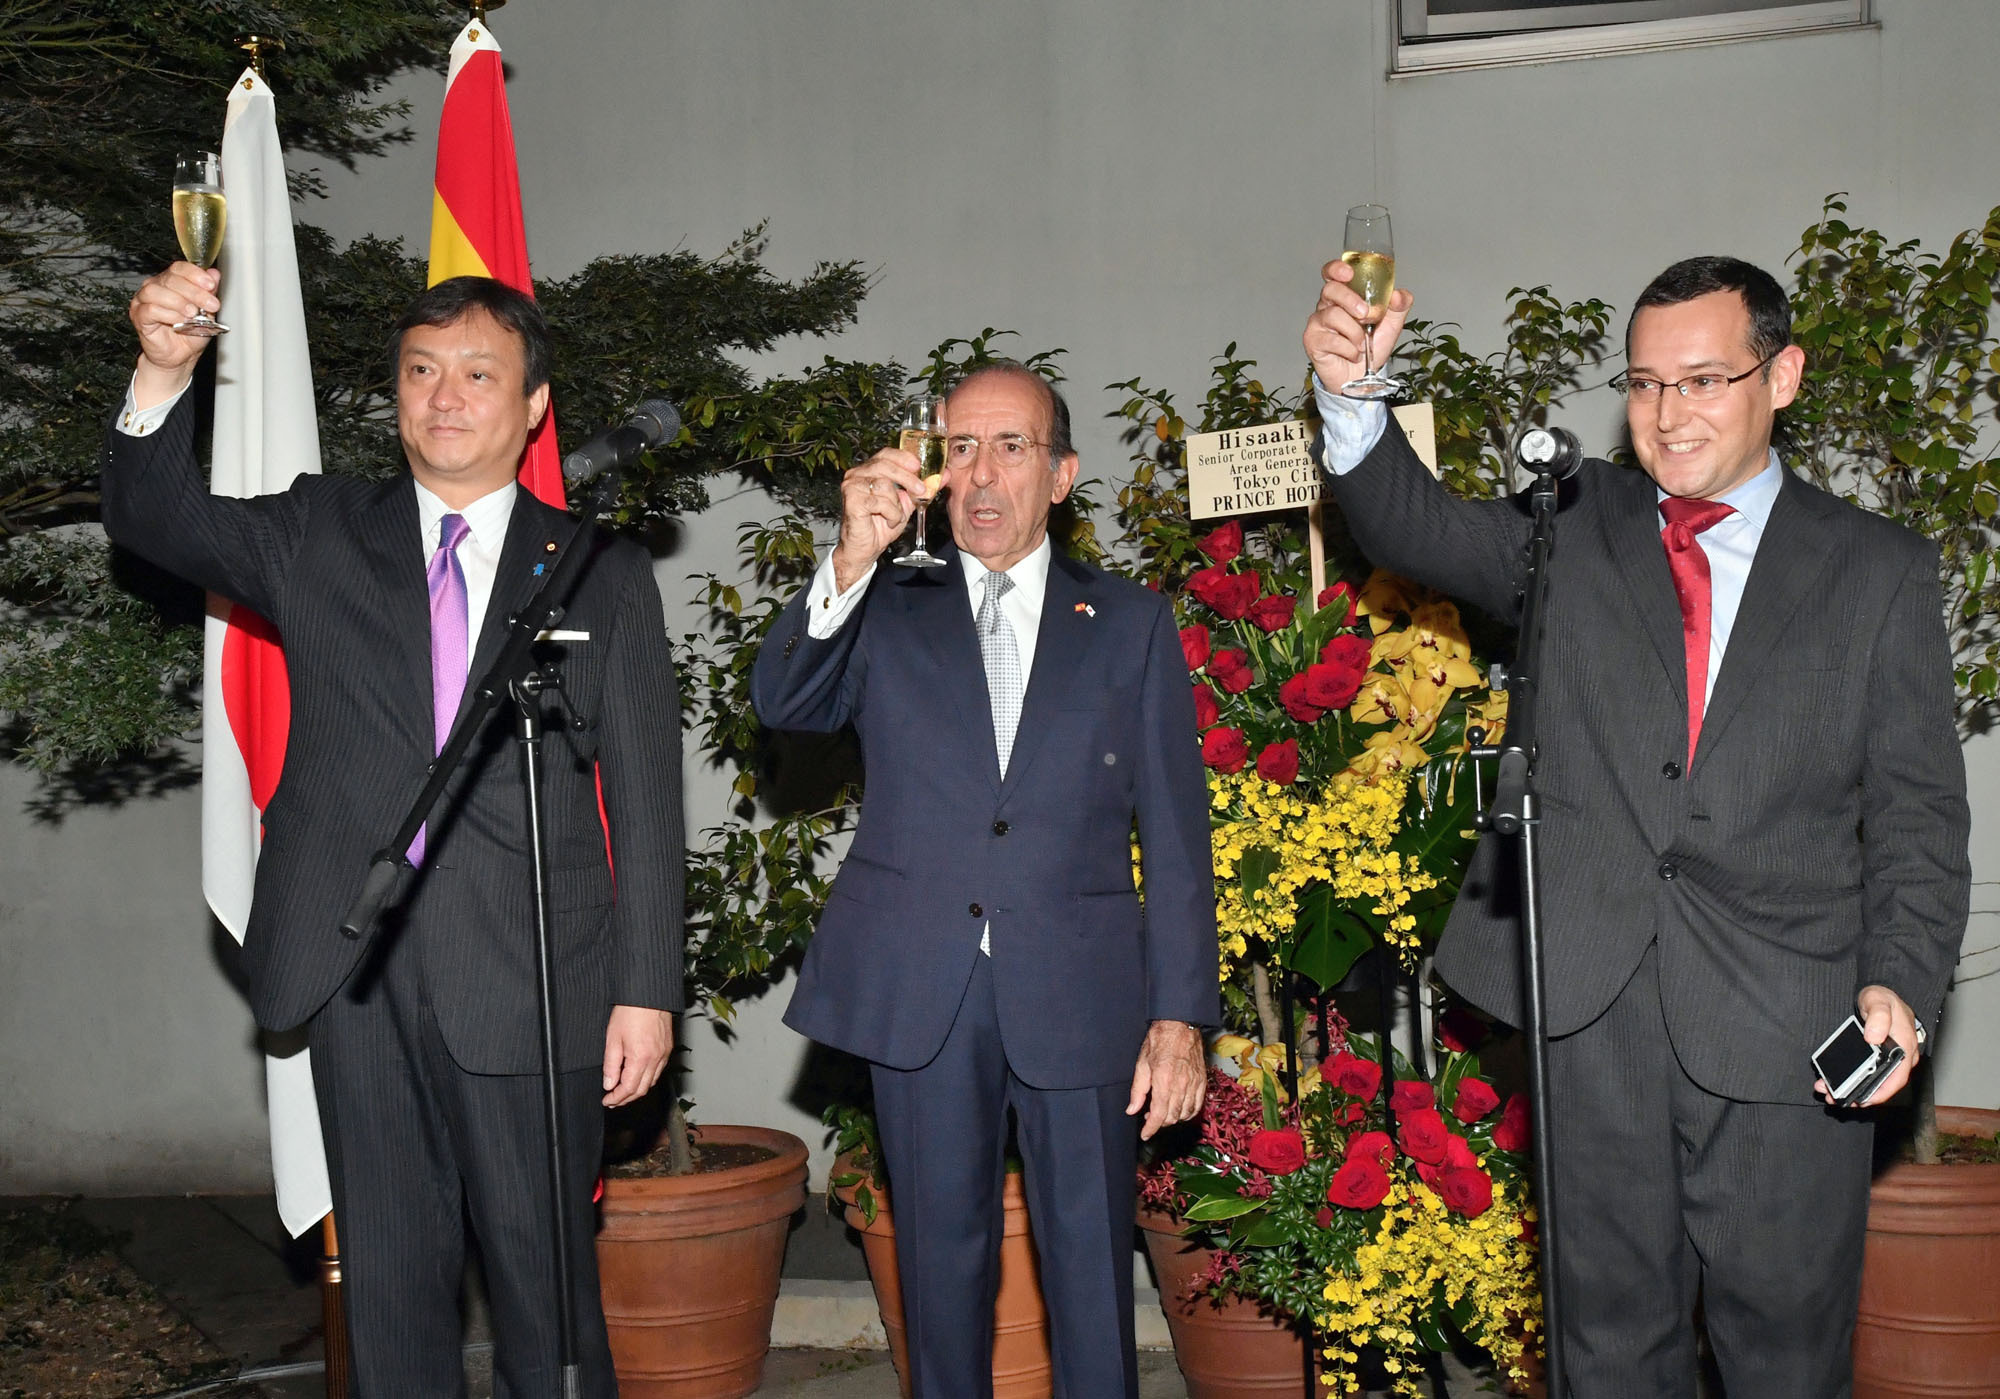 Spanish Ambasador Gonzalo de Benito (center) thanks guests in a toast with Iwao Horii (left), parliamentary vice-minister of the Foreign Ministry, and Carlos Ramos, director of the Spanish Chamber of Commerce in Japan, during a reception to celebrate Spain's national day at the embassy on Oct. 12. |  YOSHIAKI MIURA